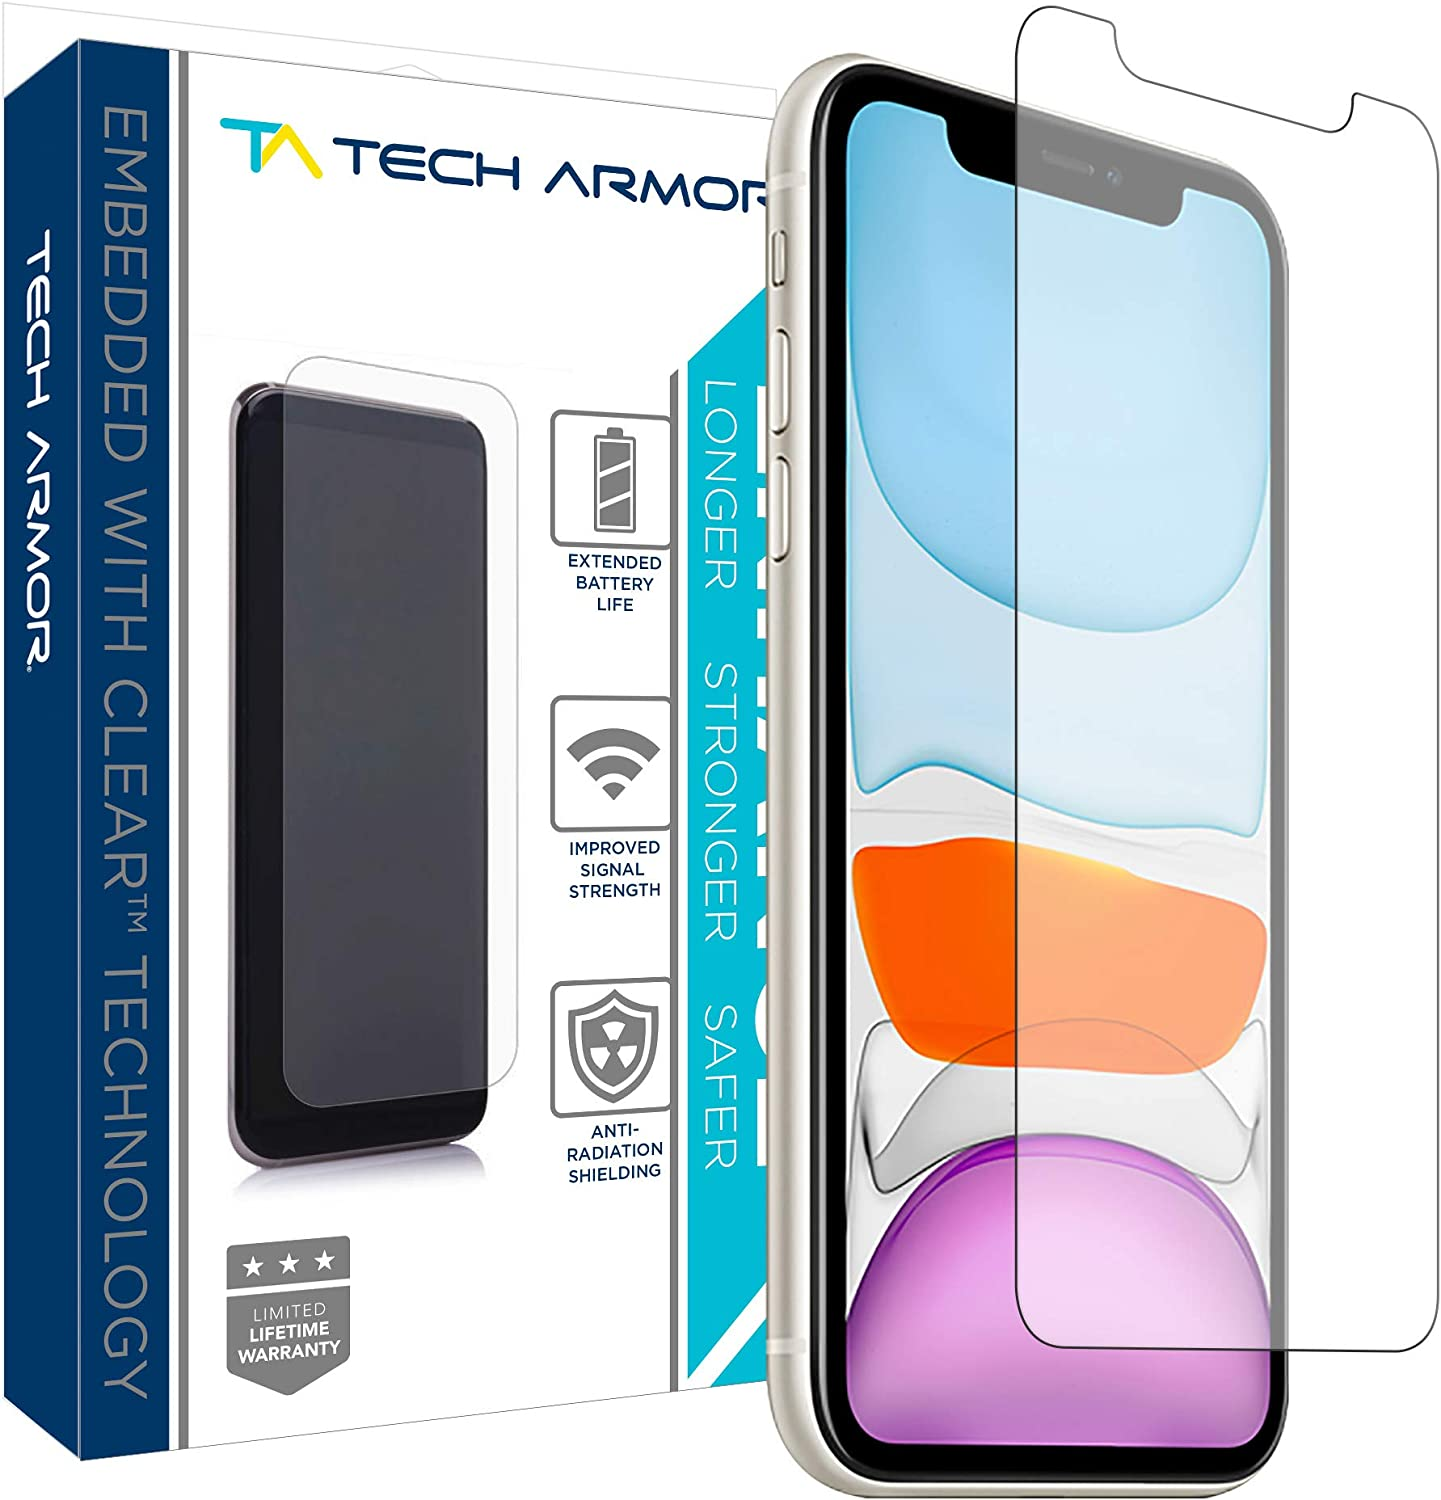 Tech Armor Enhance Radiation Blocking Screen Protector for New 2019 Apple iPhone 11 / iPhone Xr - Blocks Harmful Radiation, Improves Battery Life and Cell Signal - [1-Pack]